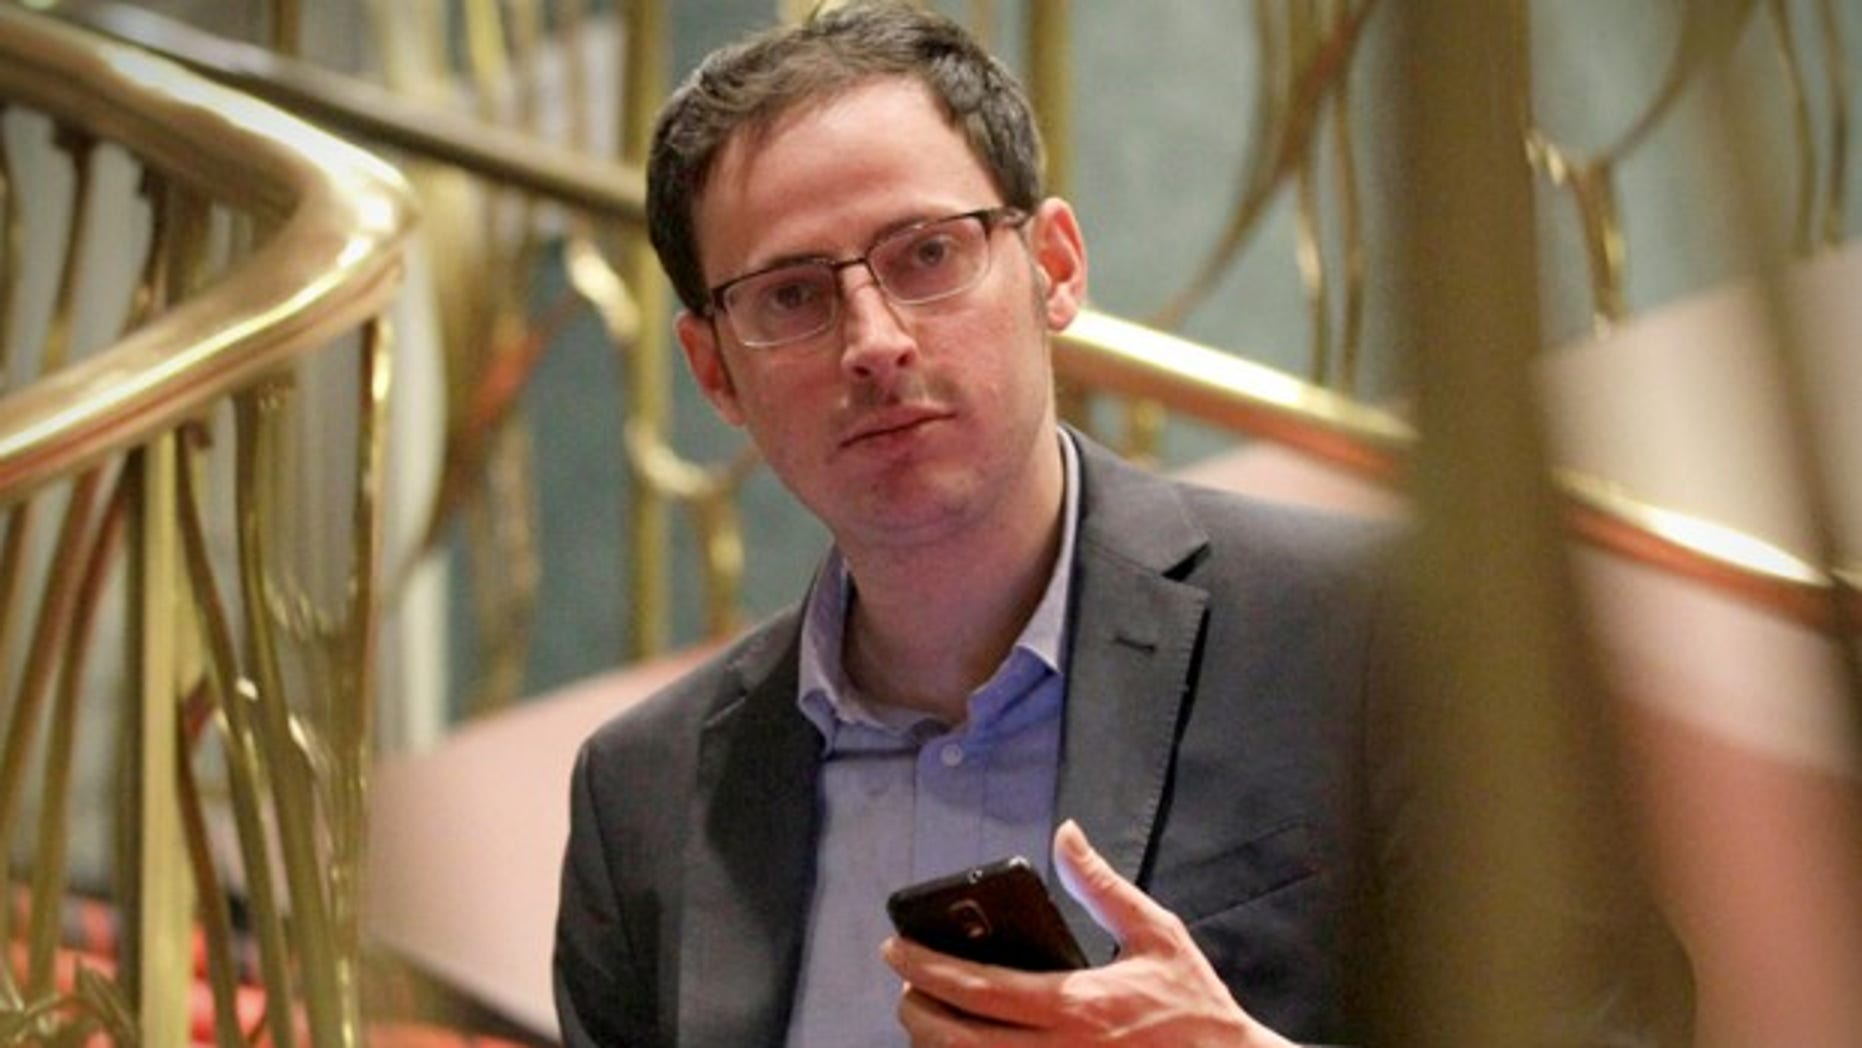 Political forecaster Nate Silver reported Tuesday that the chances of Republicans maintaining control of the House of Representatives are narrowing.